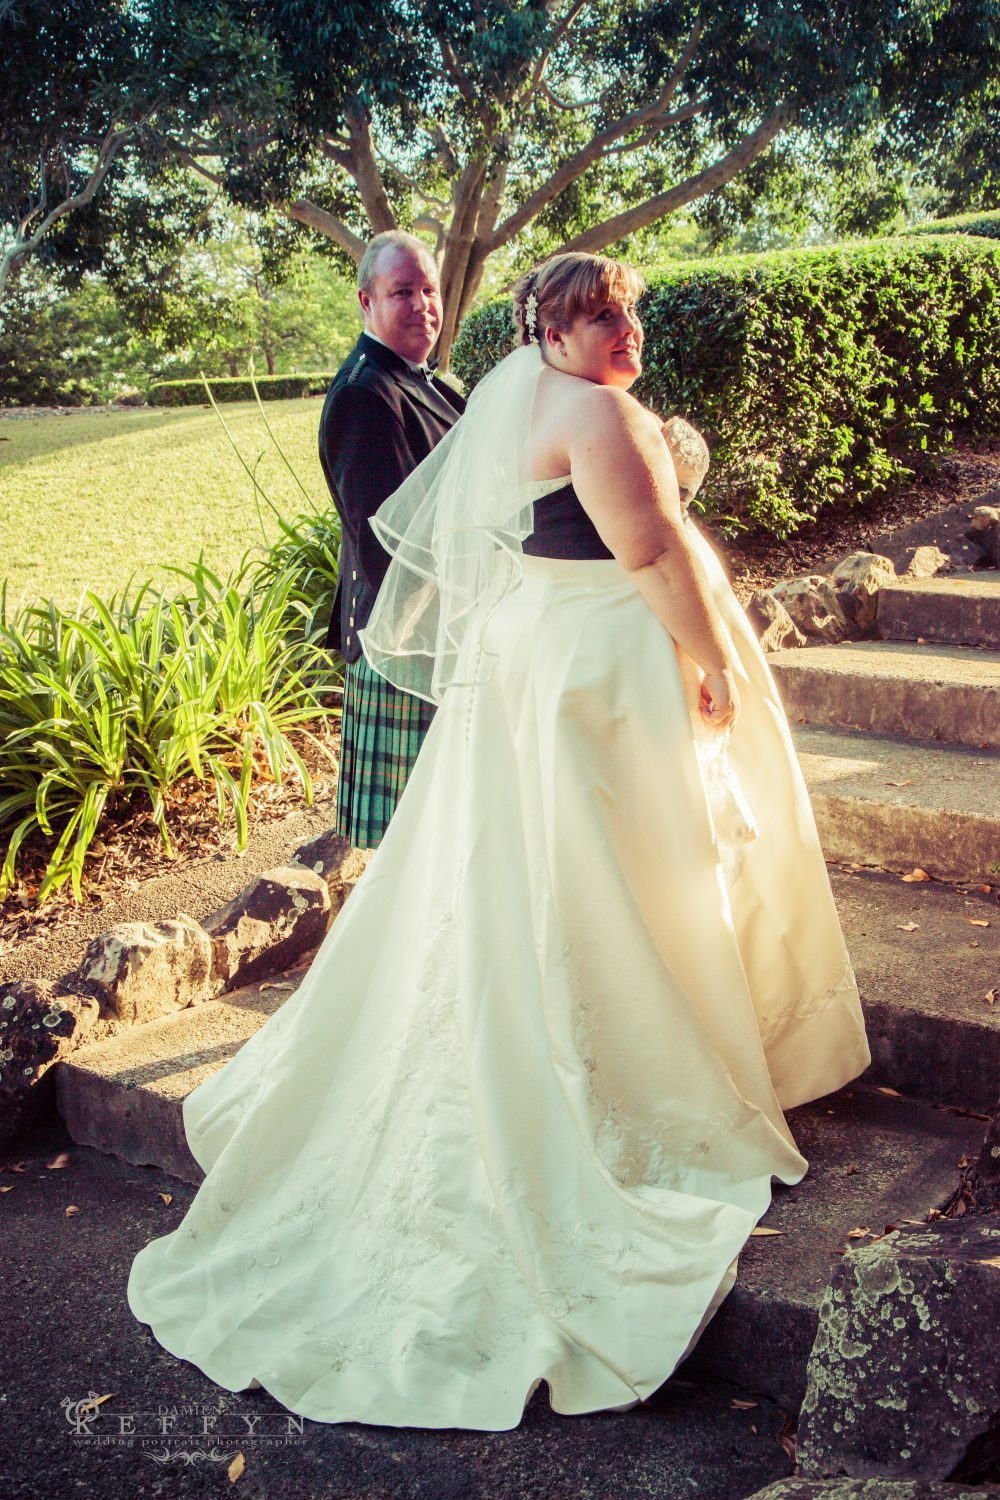 Celtic wedding North Brisbane Australia, Sunshine Coast, Gold Coast, Brisbane, Wedding Portrait Maternity Family Photographer Damien Keffyn AIPP